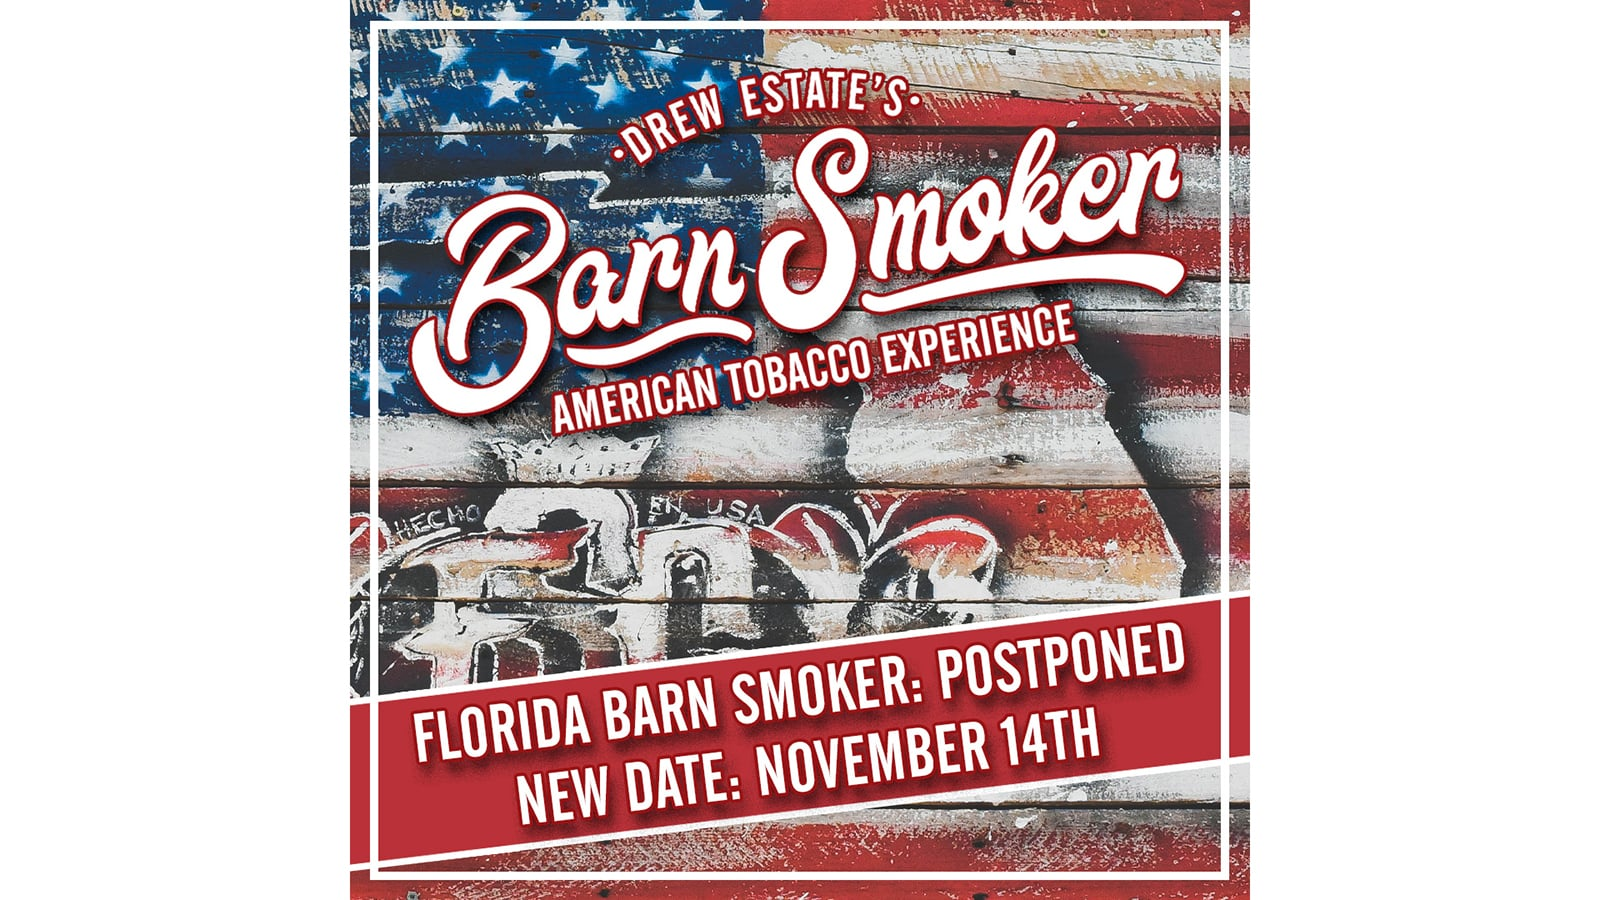 Florida Barn Smoker